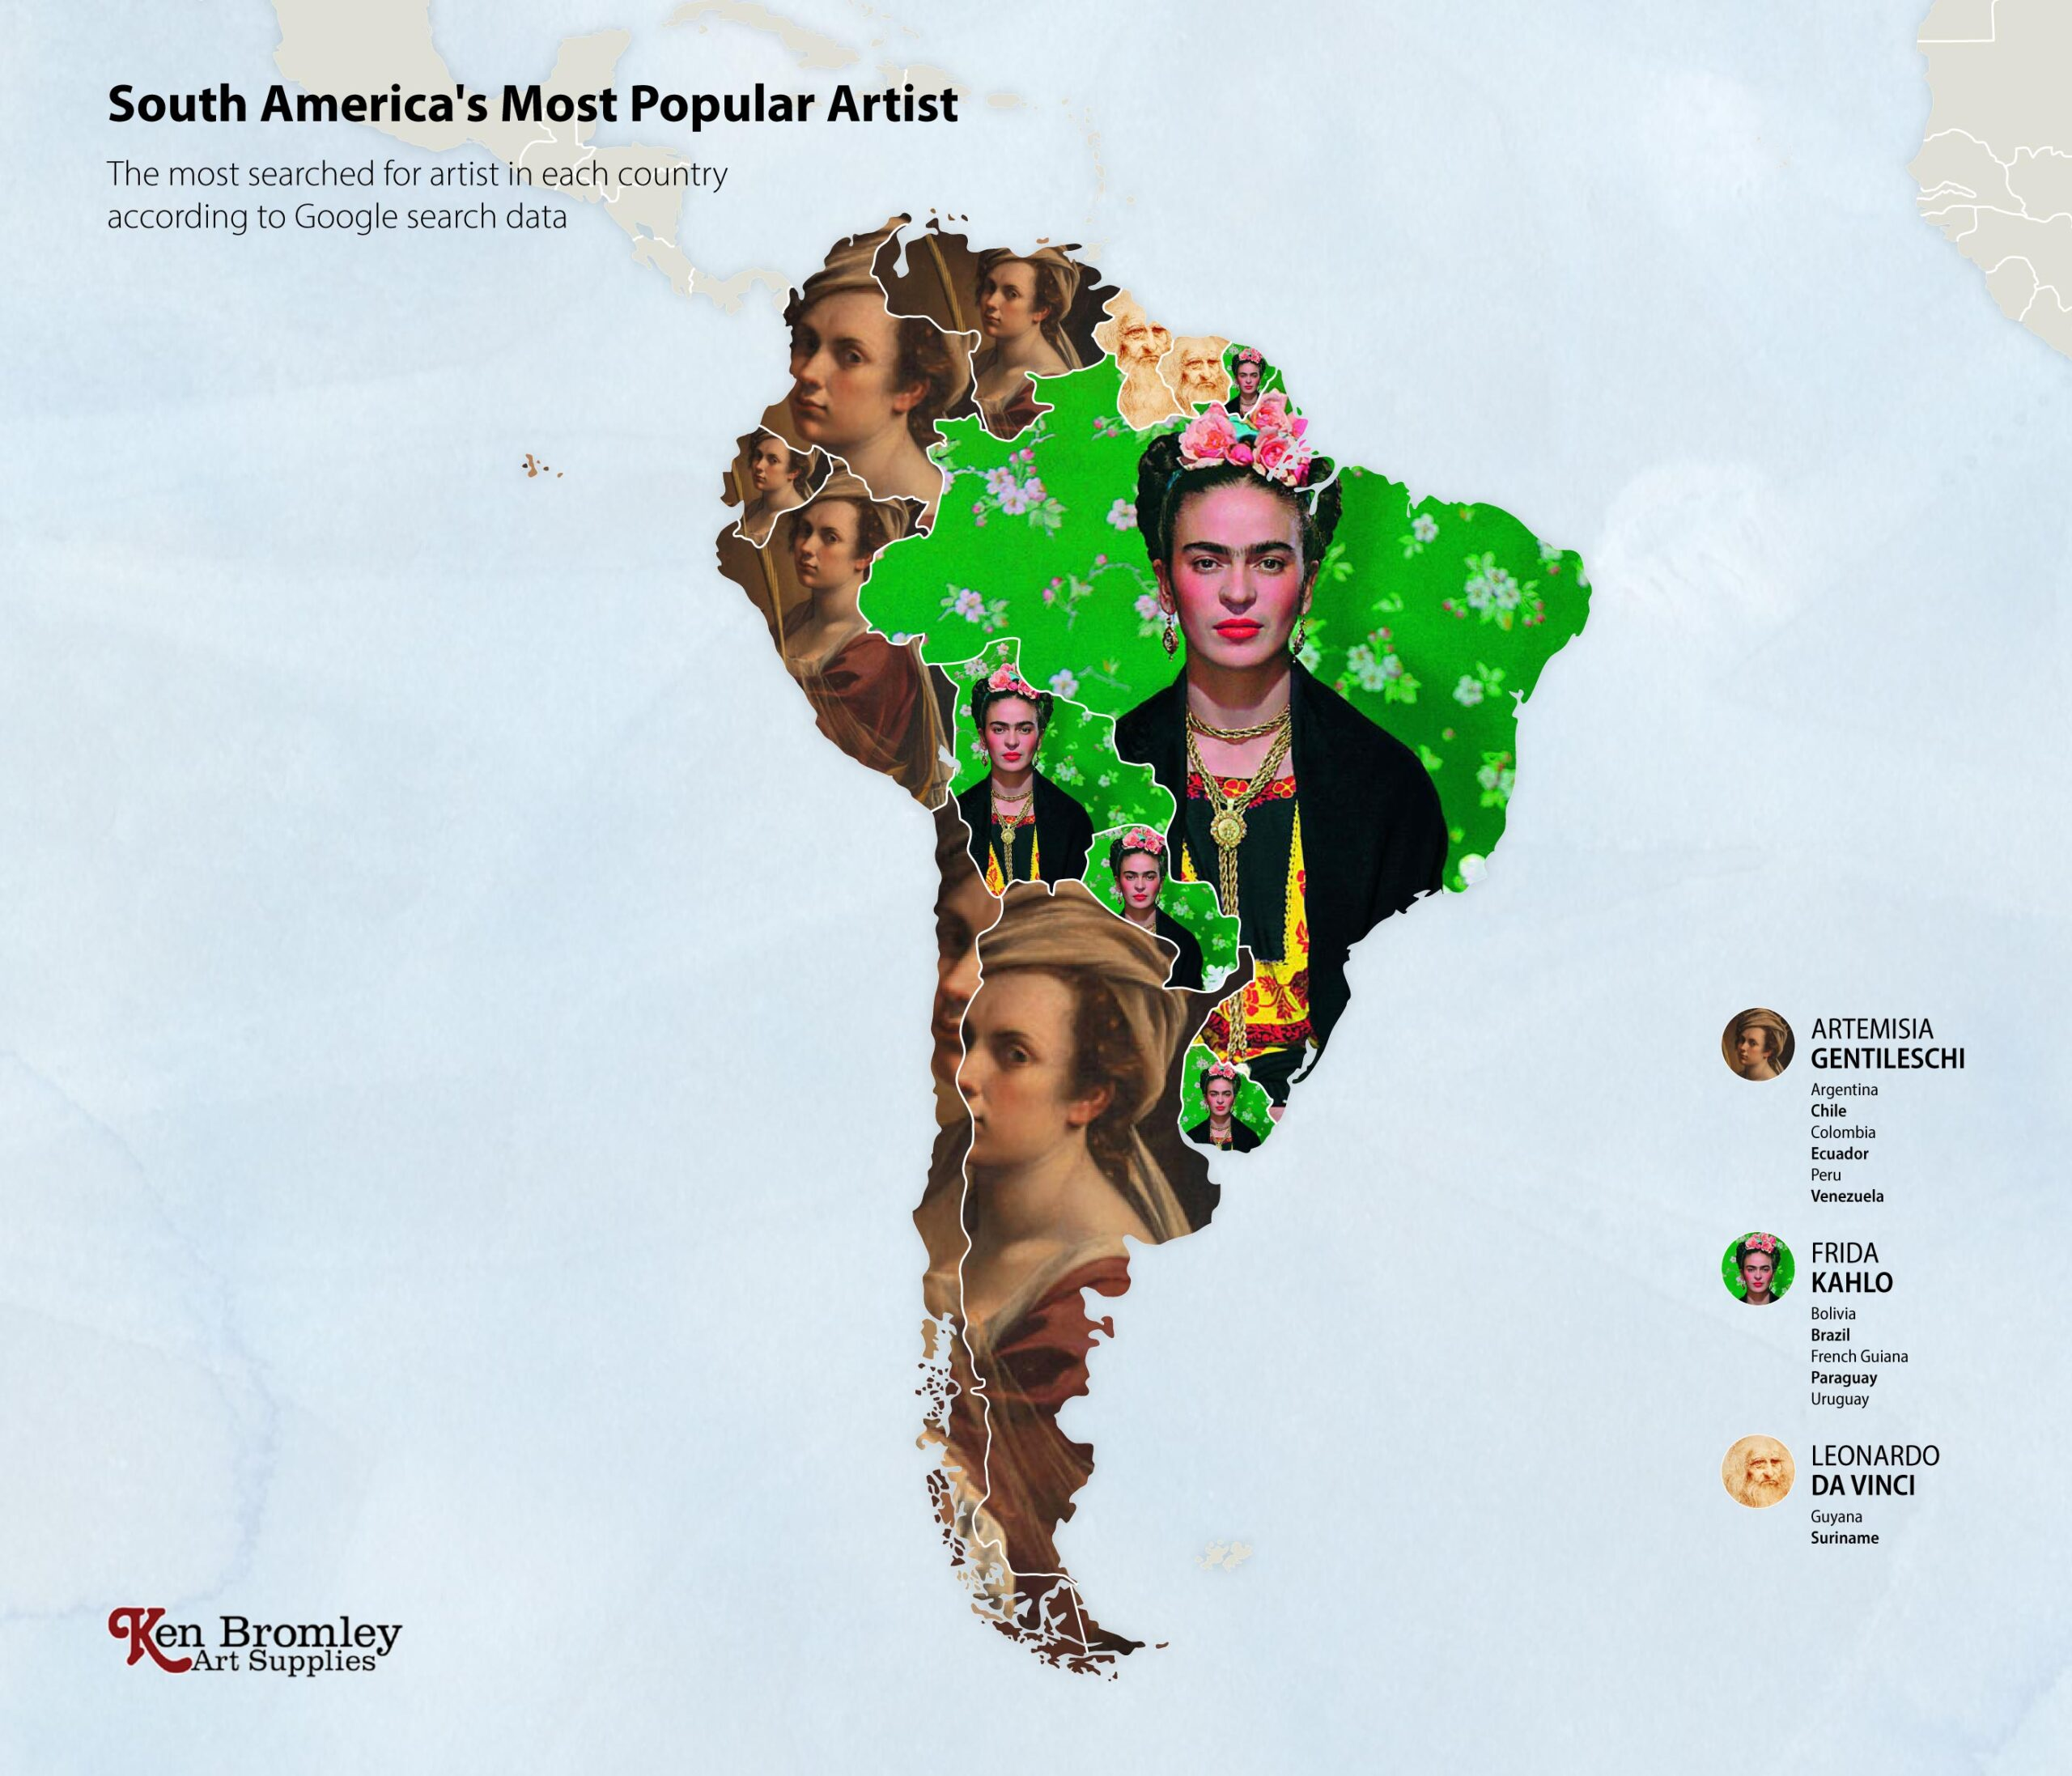 The most popular artists in South America